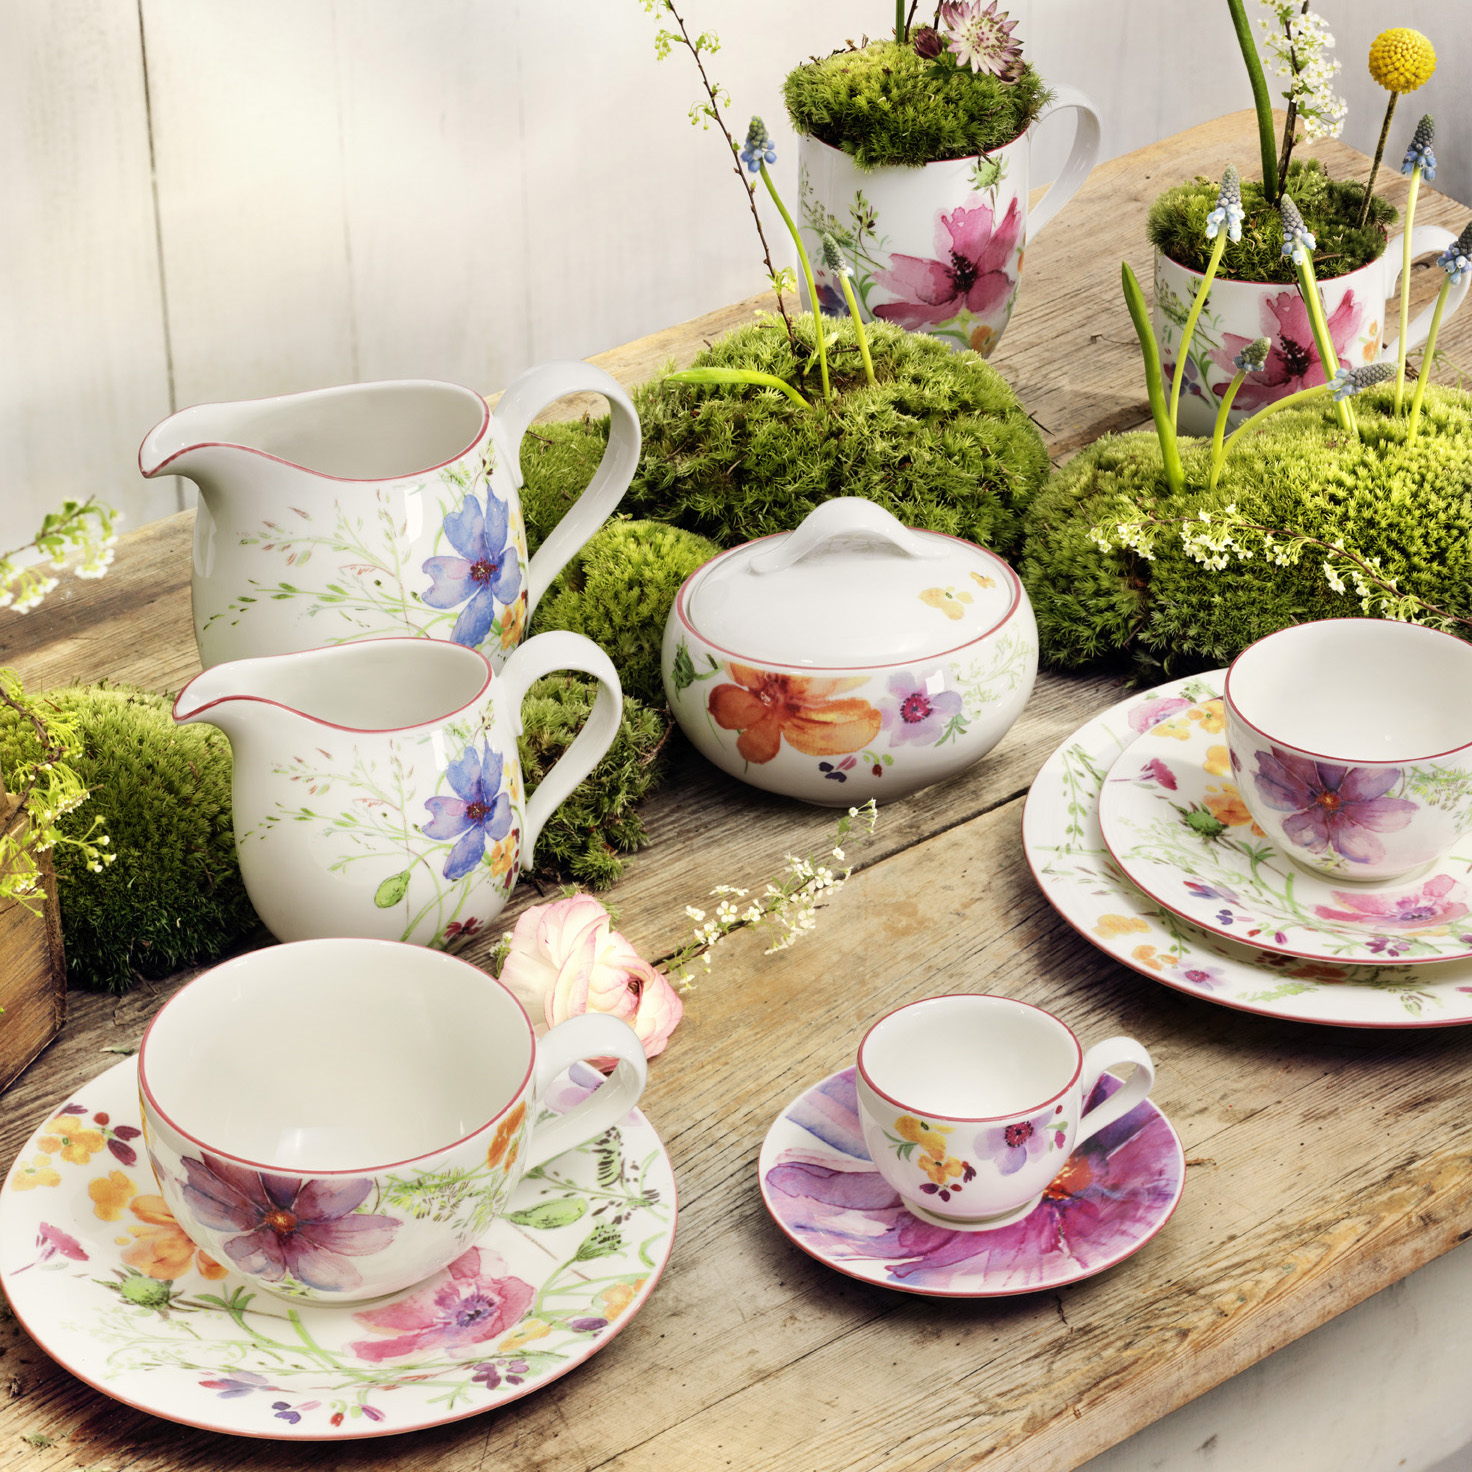 Good life 2 go villeroy boch mairefleur collection - Villeroy and bosh ...